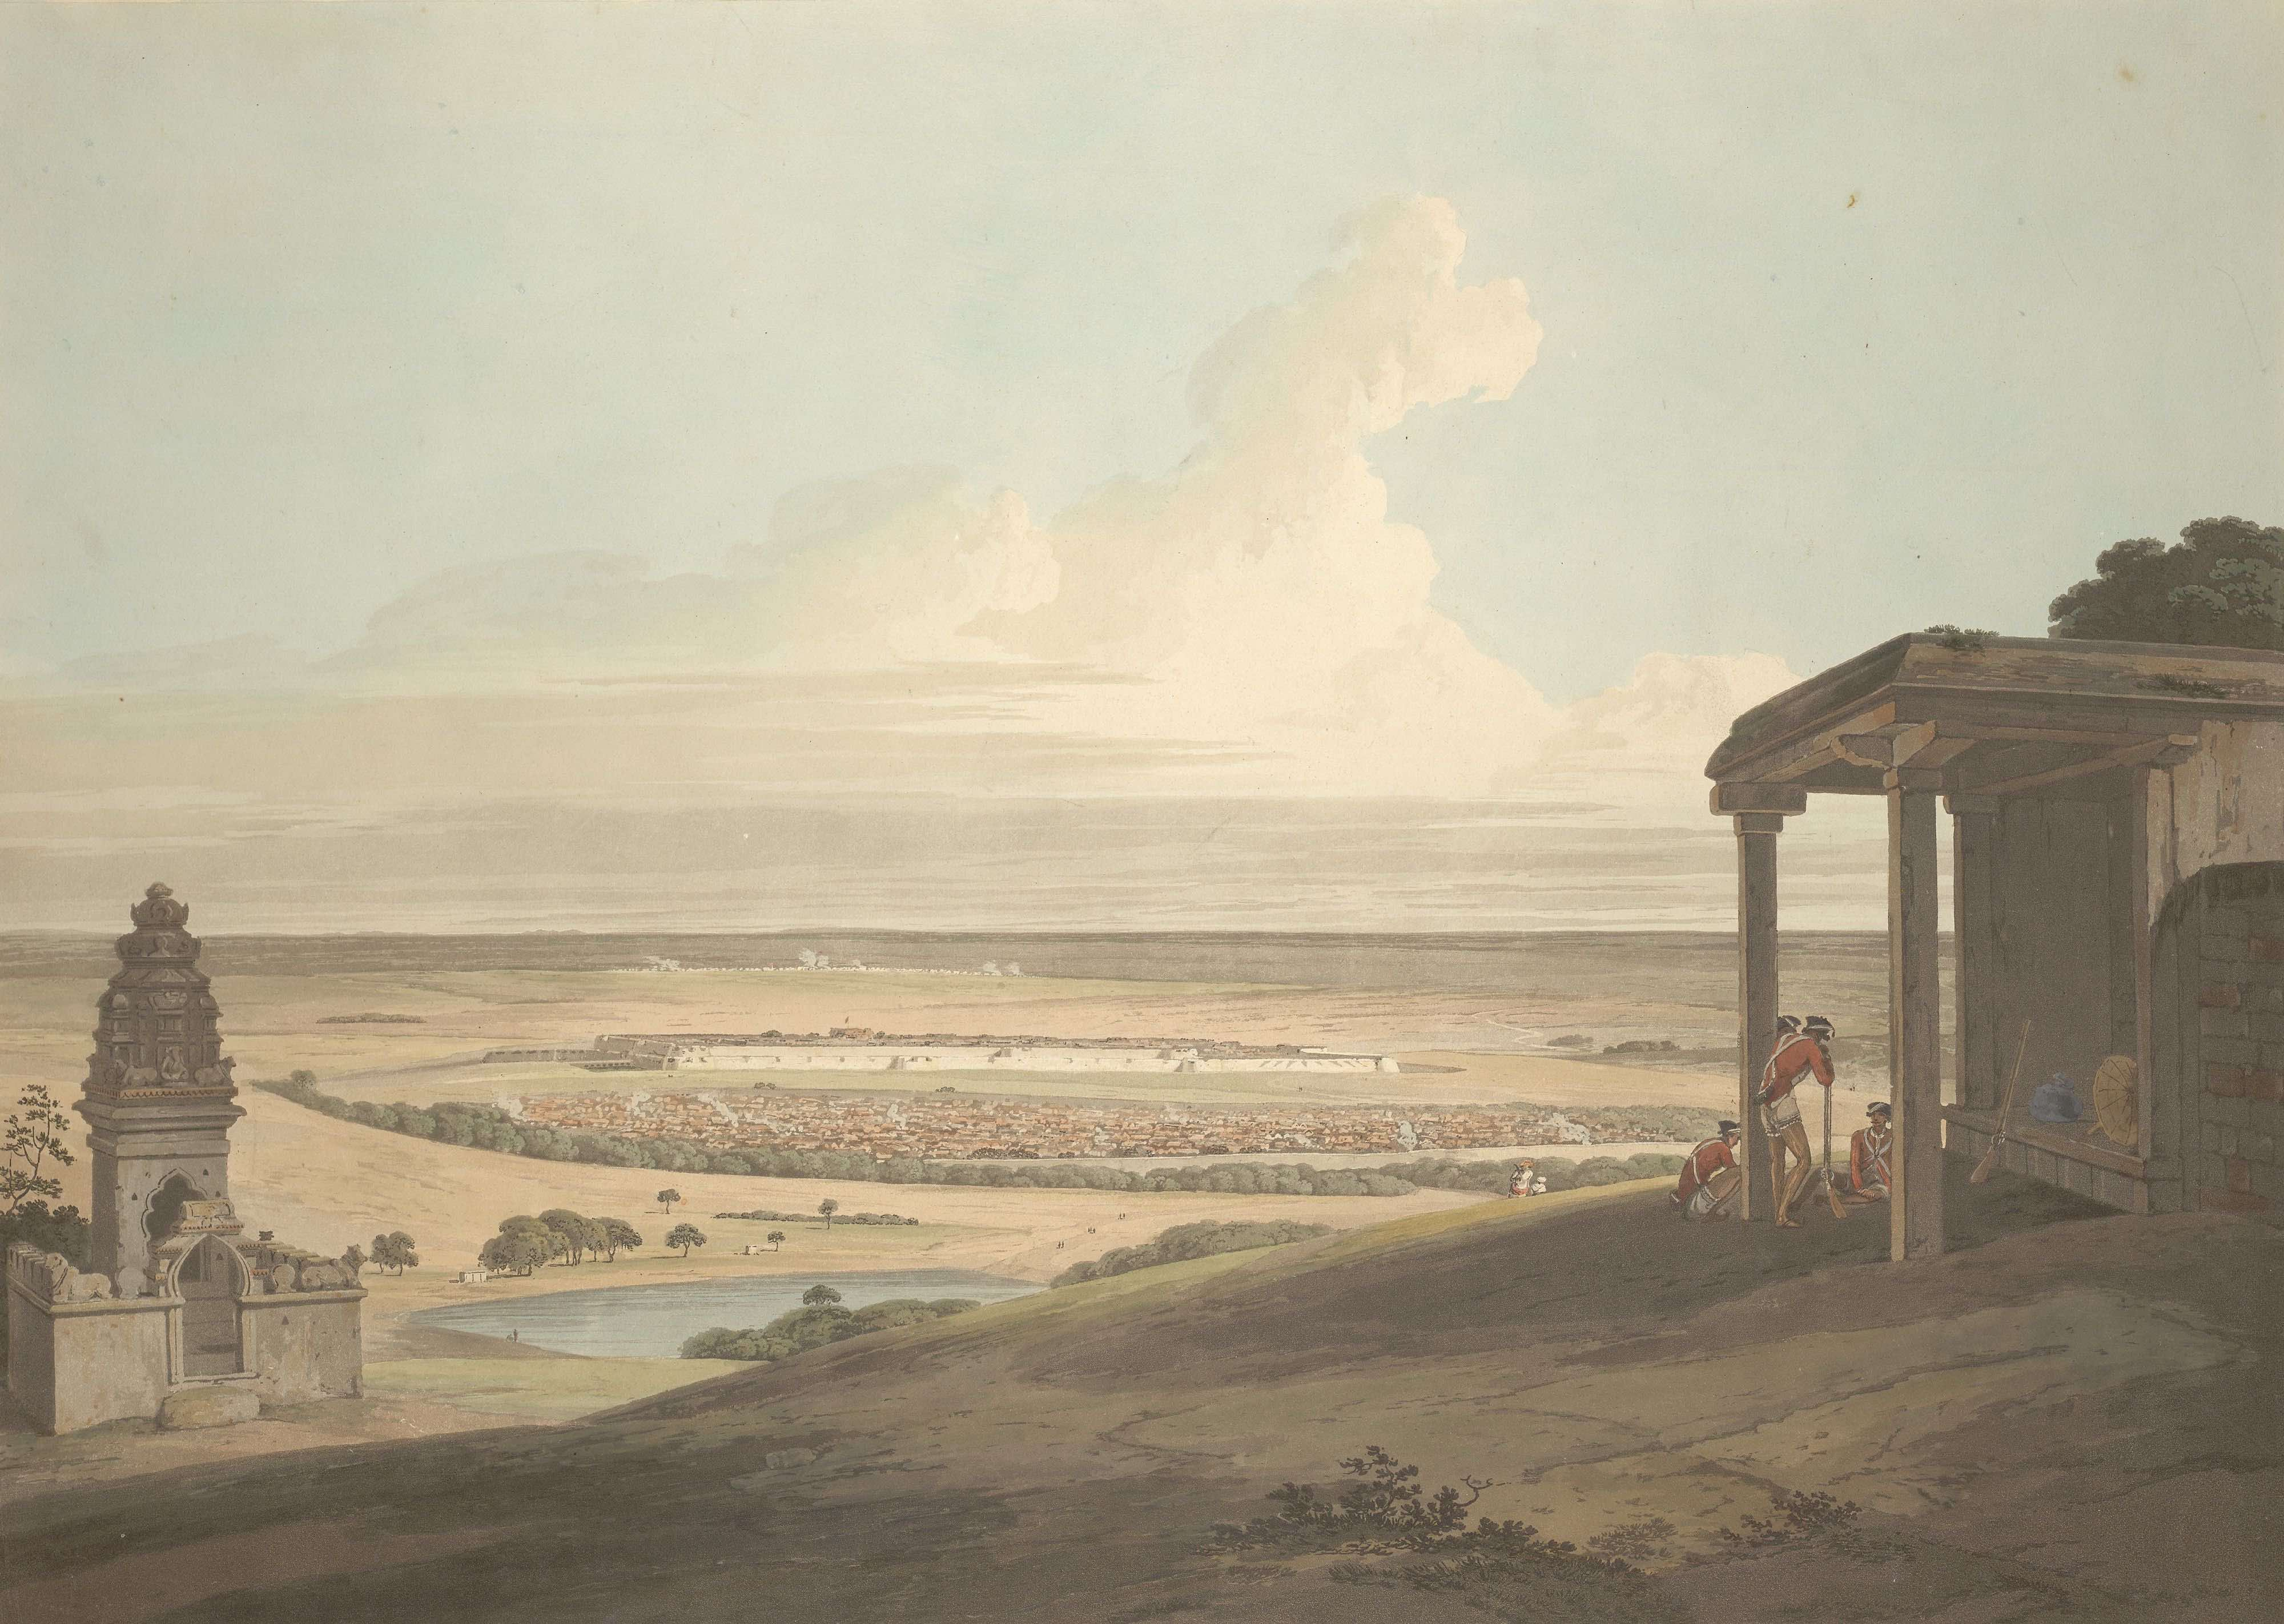 Thomas Daniell, Ousoor in the Mysore. Credit: British Library